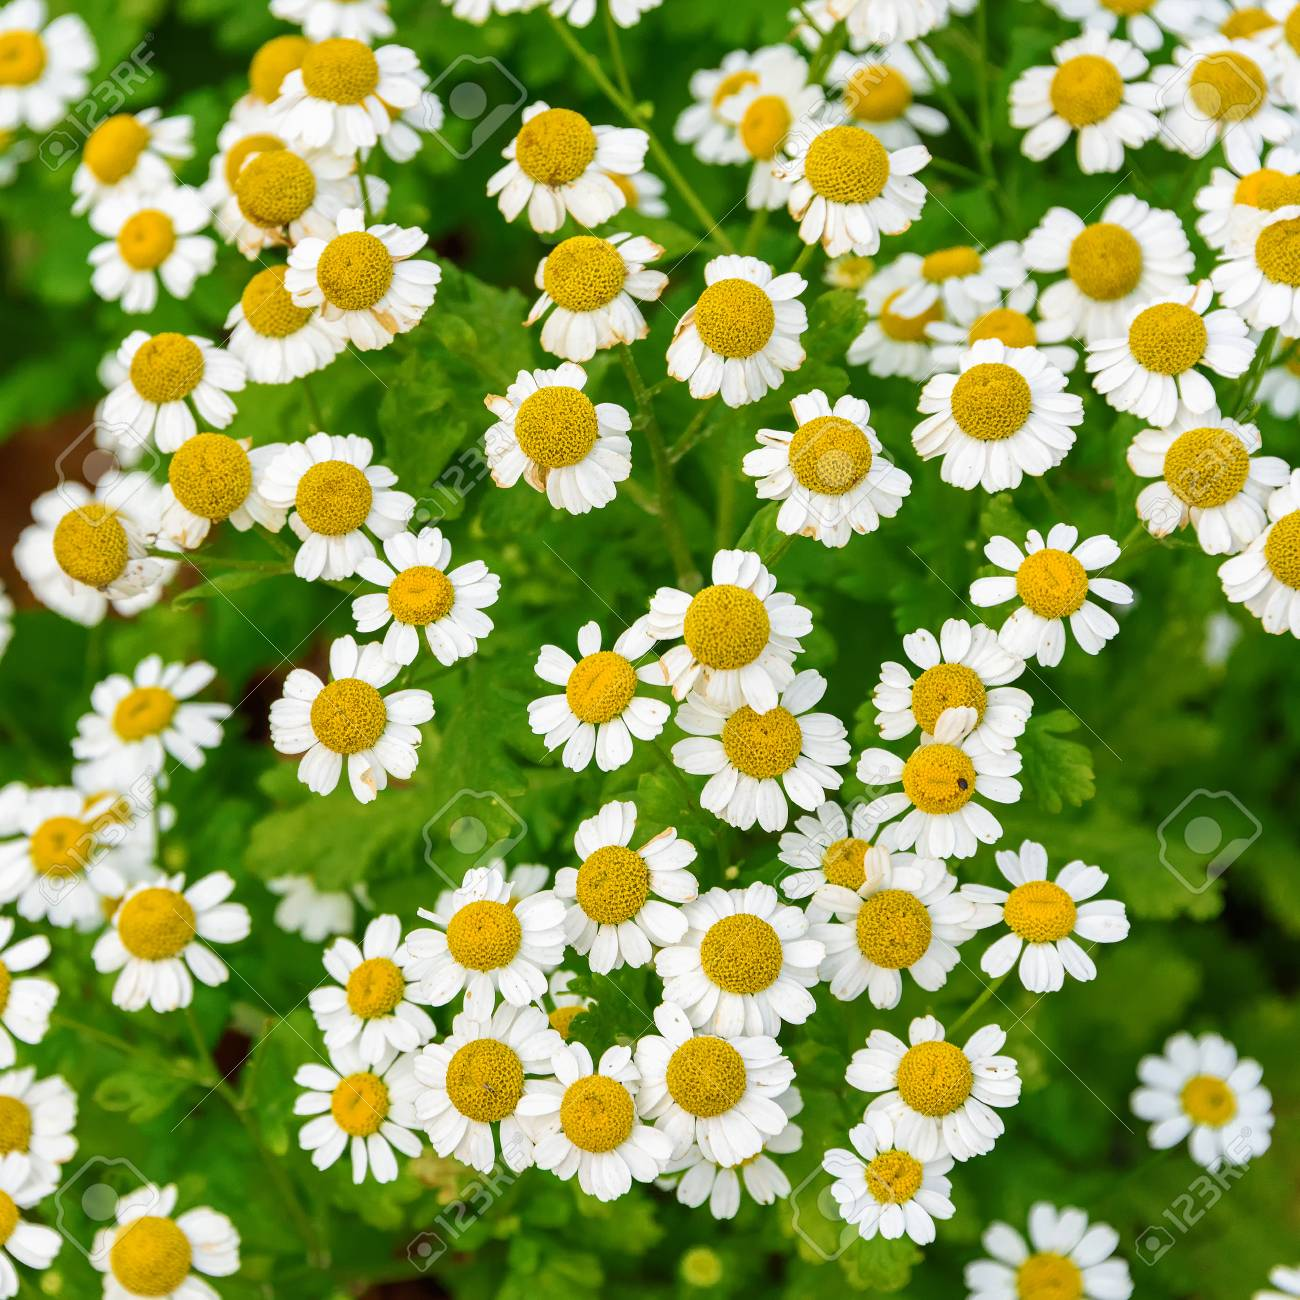 A Flower Bed With Daisies Background Of White Flowers Close Up